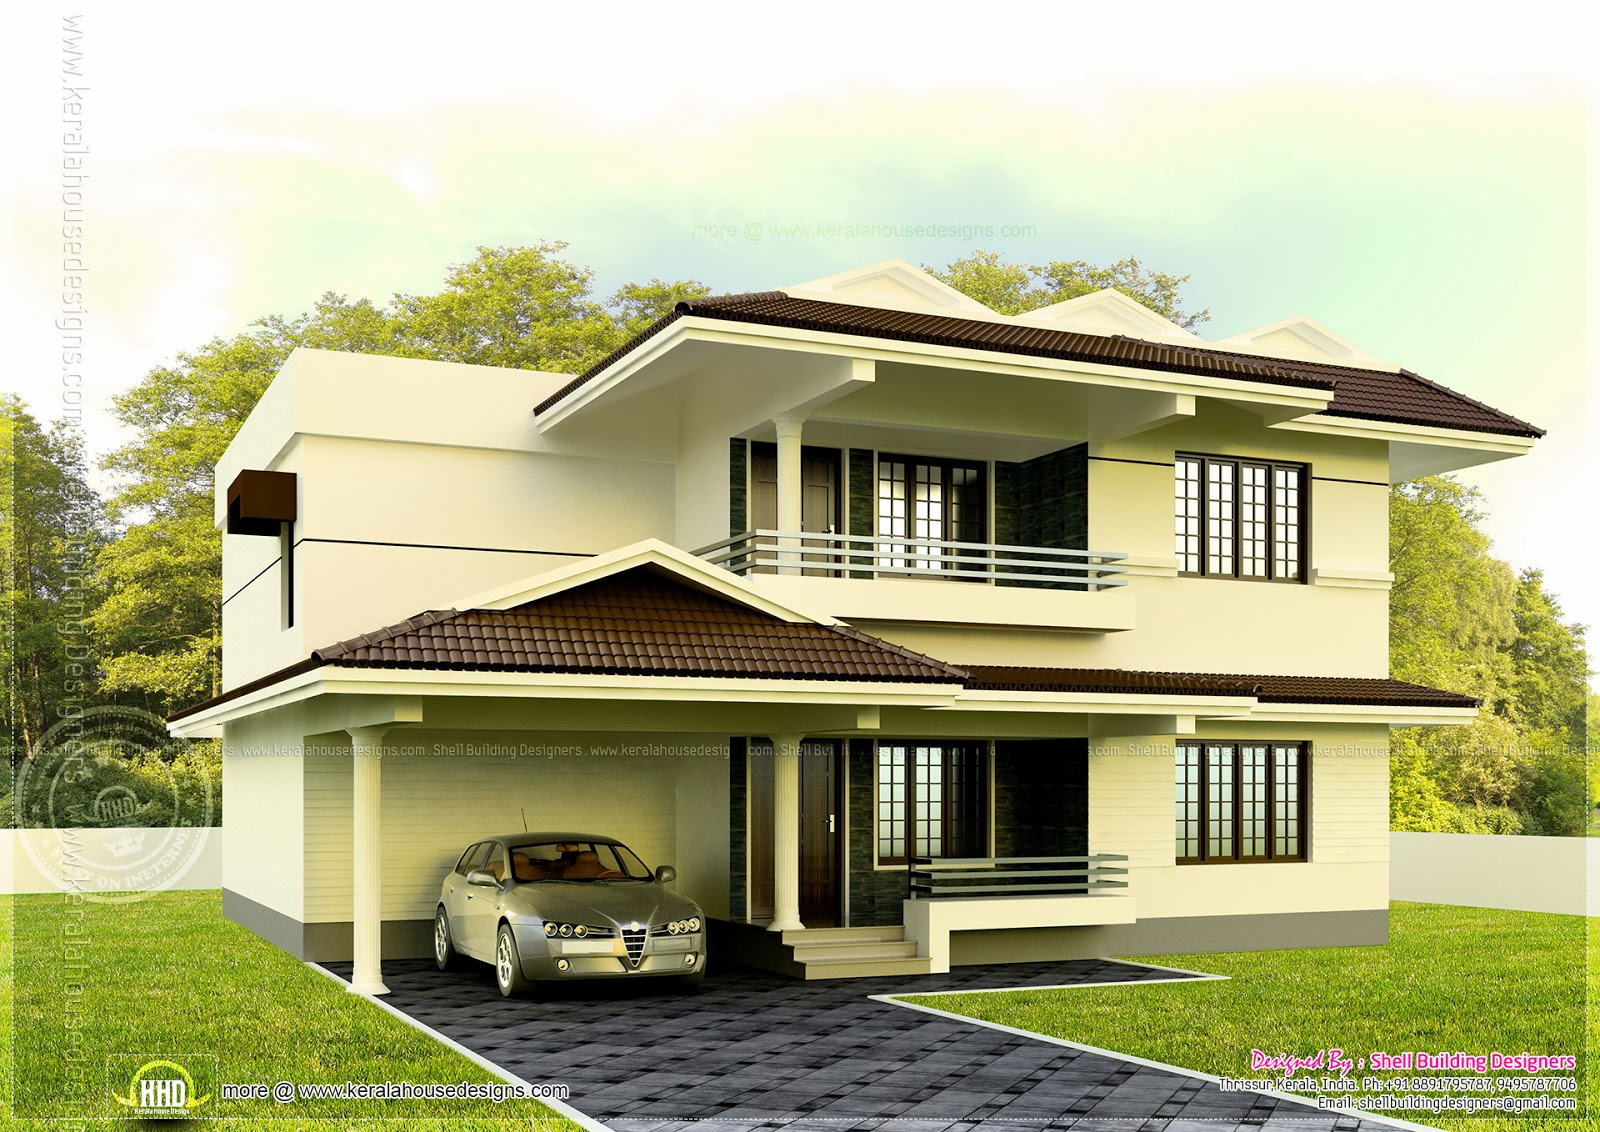 House Plans  4 bedroom house exterior in 1901 square feet